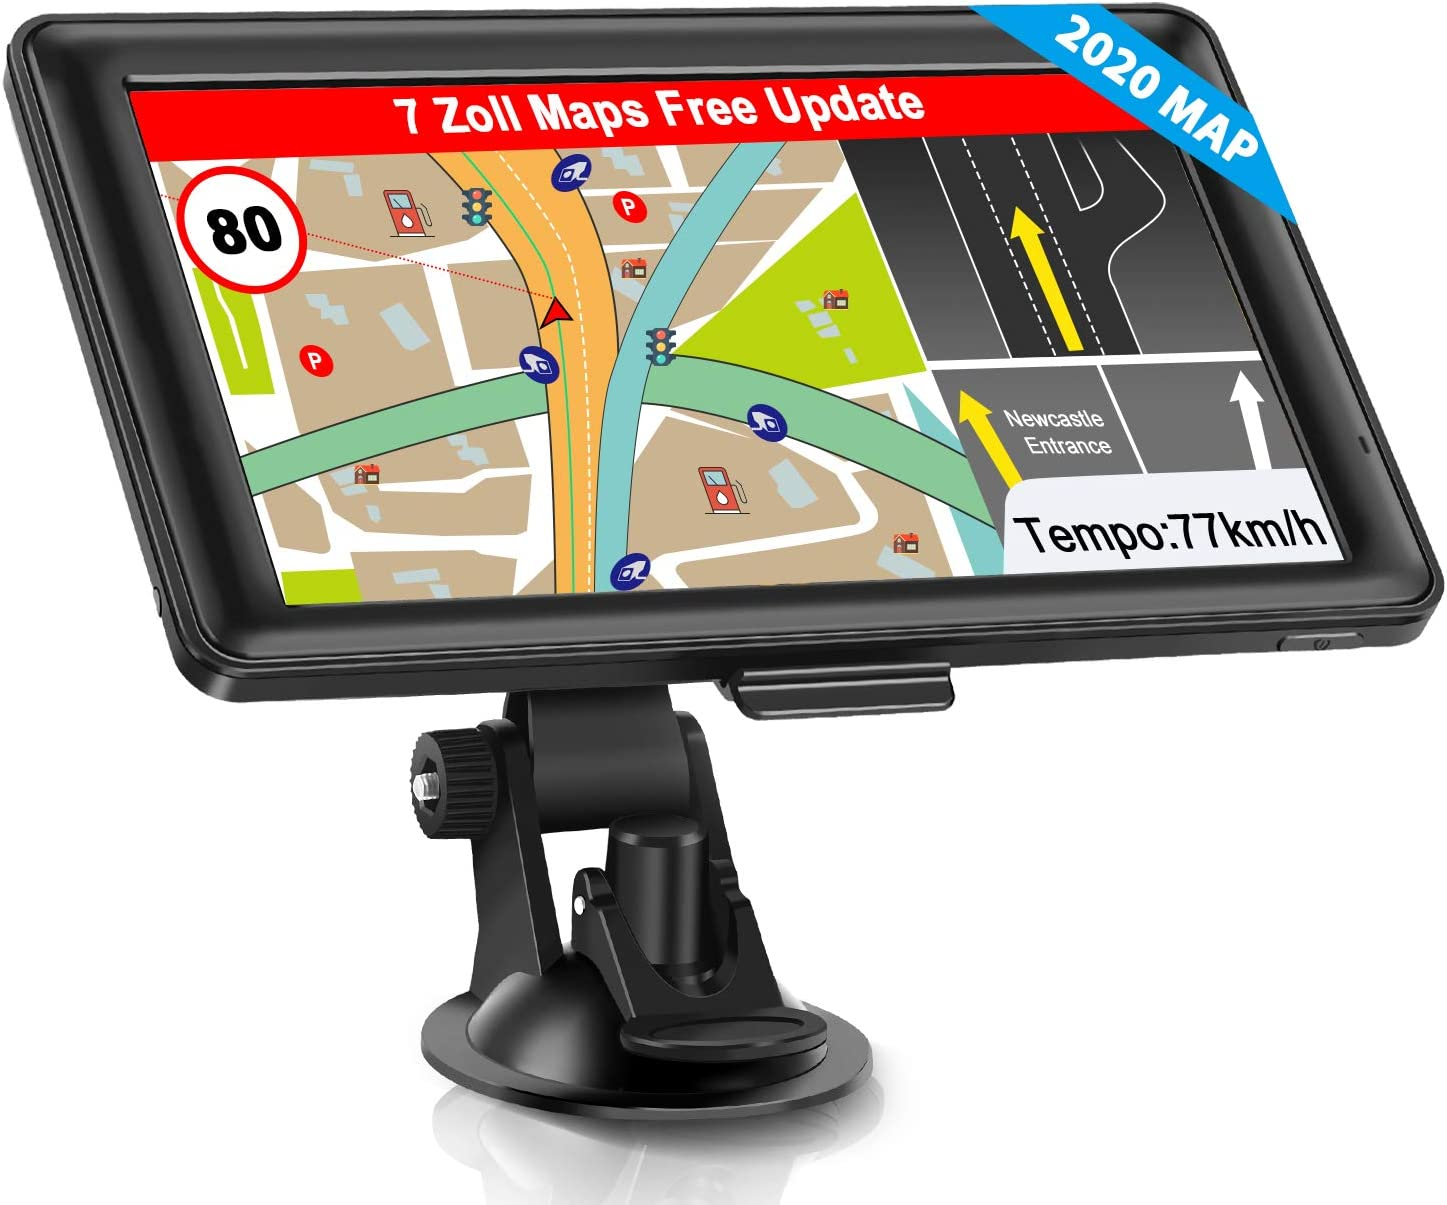 Gps Sat Nav Navigation For Car Lorry Vehicle Touchscreen 7 Inch 8g 256m Voice Guide Speed Camera Warning With Poi Lifetime Free Map Update Navigation Device Lane Assistant Eu Uk 48 Maps